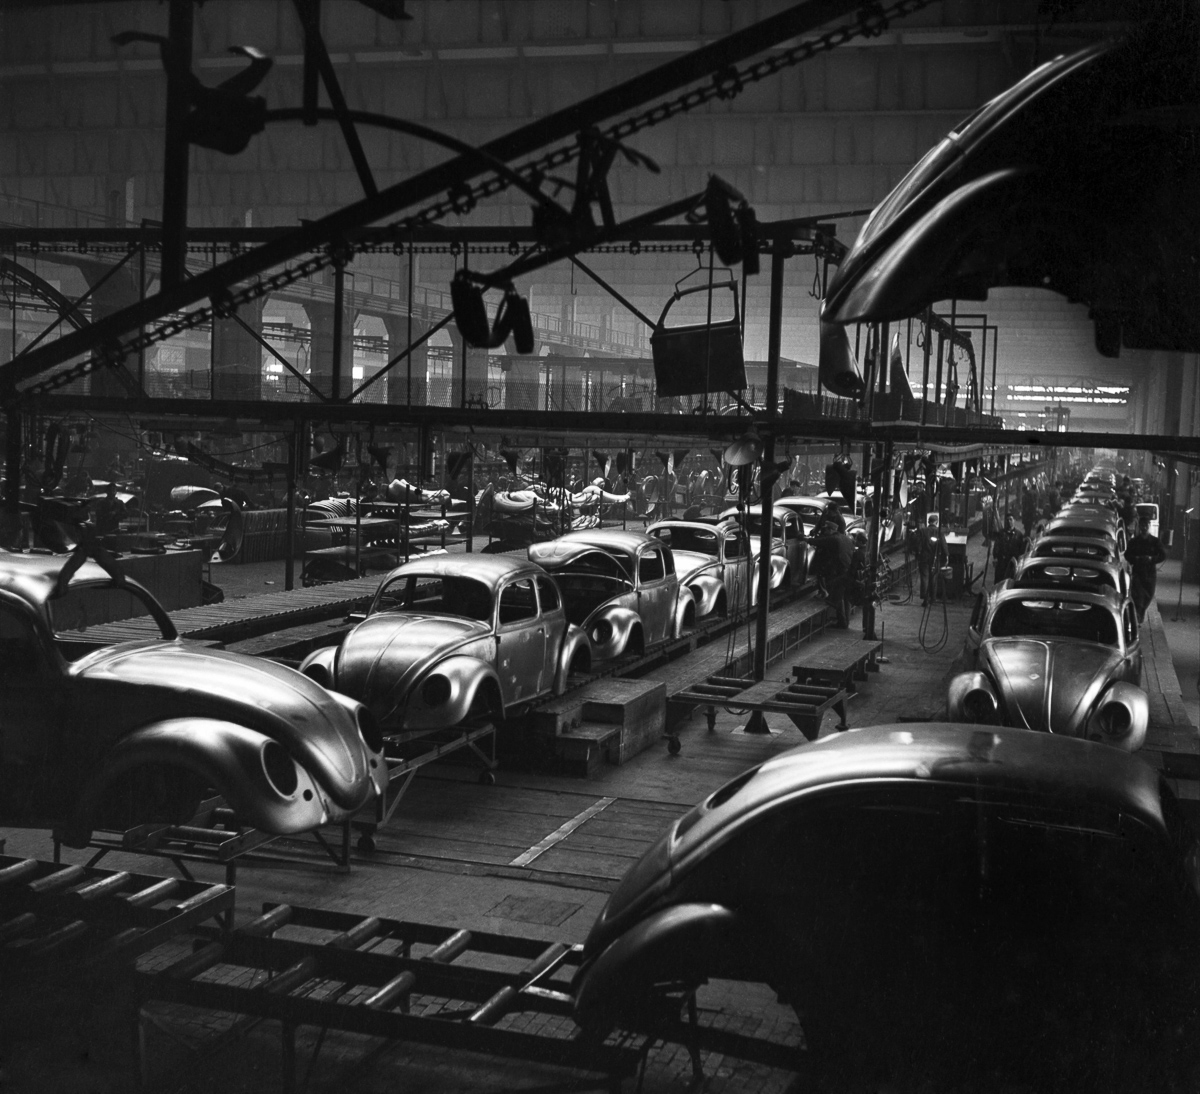 15 Dec 1952 --- General views of the production line at the volkswagen factory producing Beetle cars in Germany. December 1952 C6101-002 --- Image by © WATFORD/Mirrorpix/Corbis